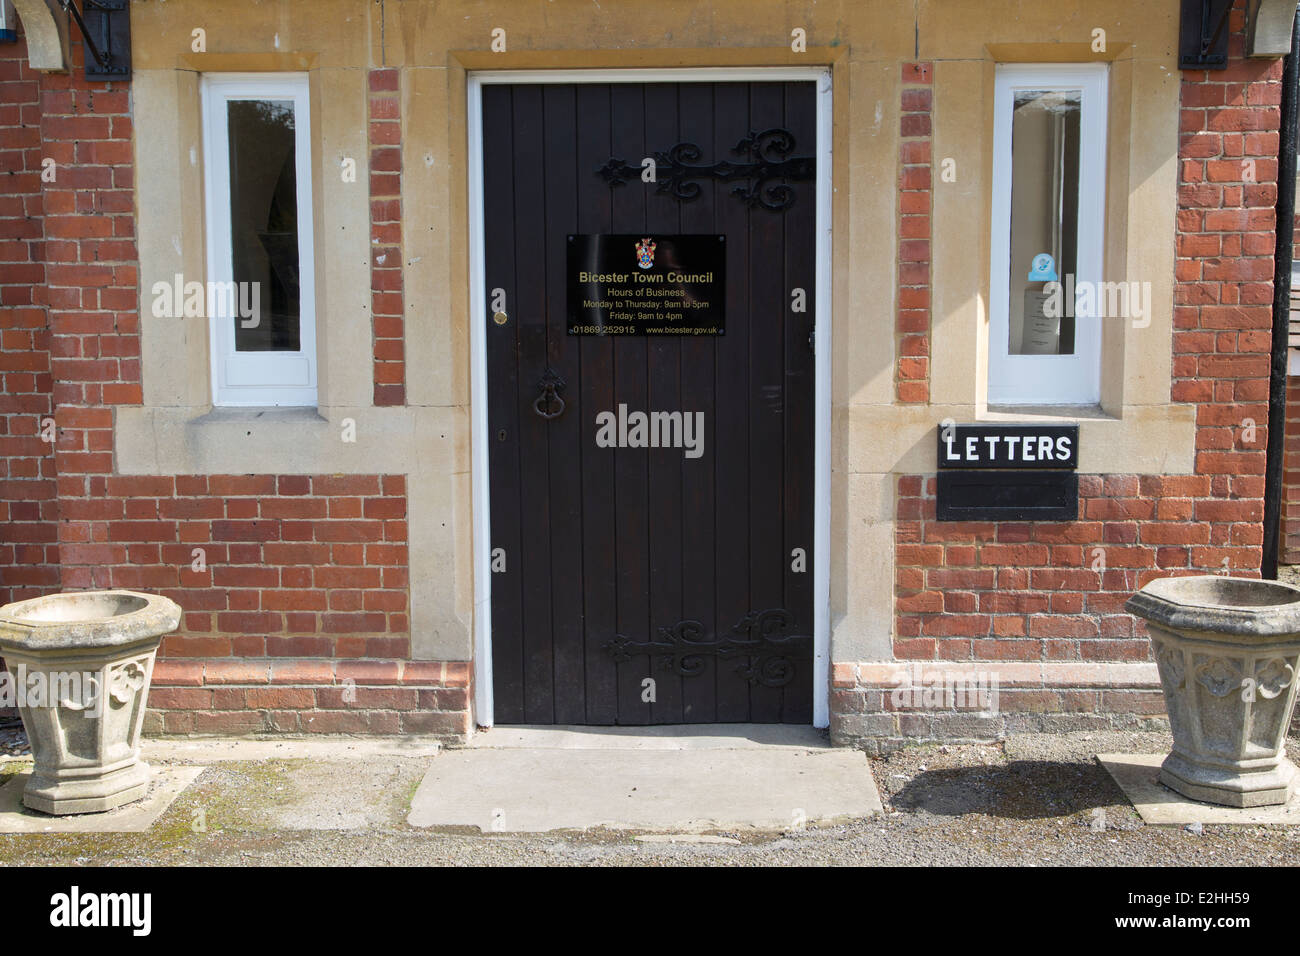 Bicester Town Council - Stock Image